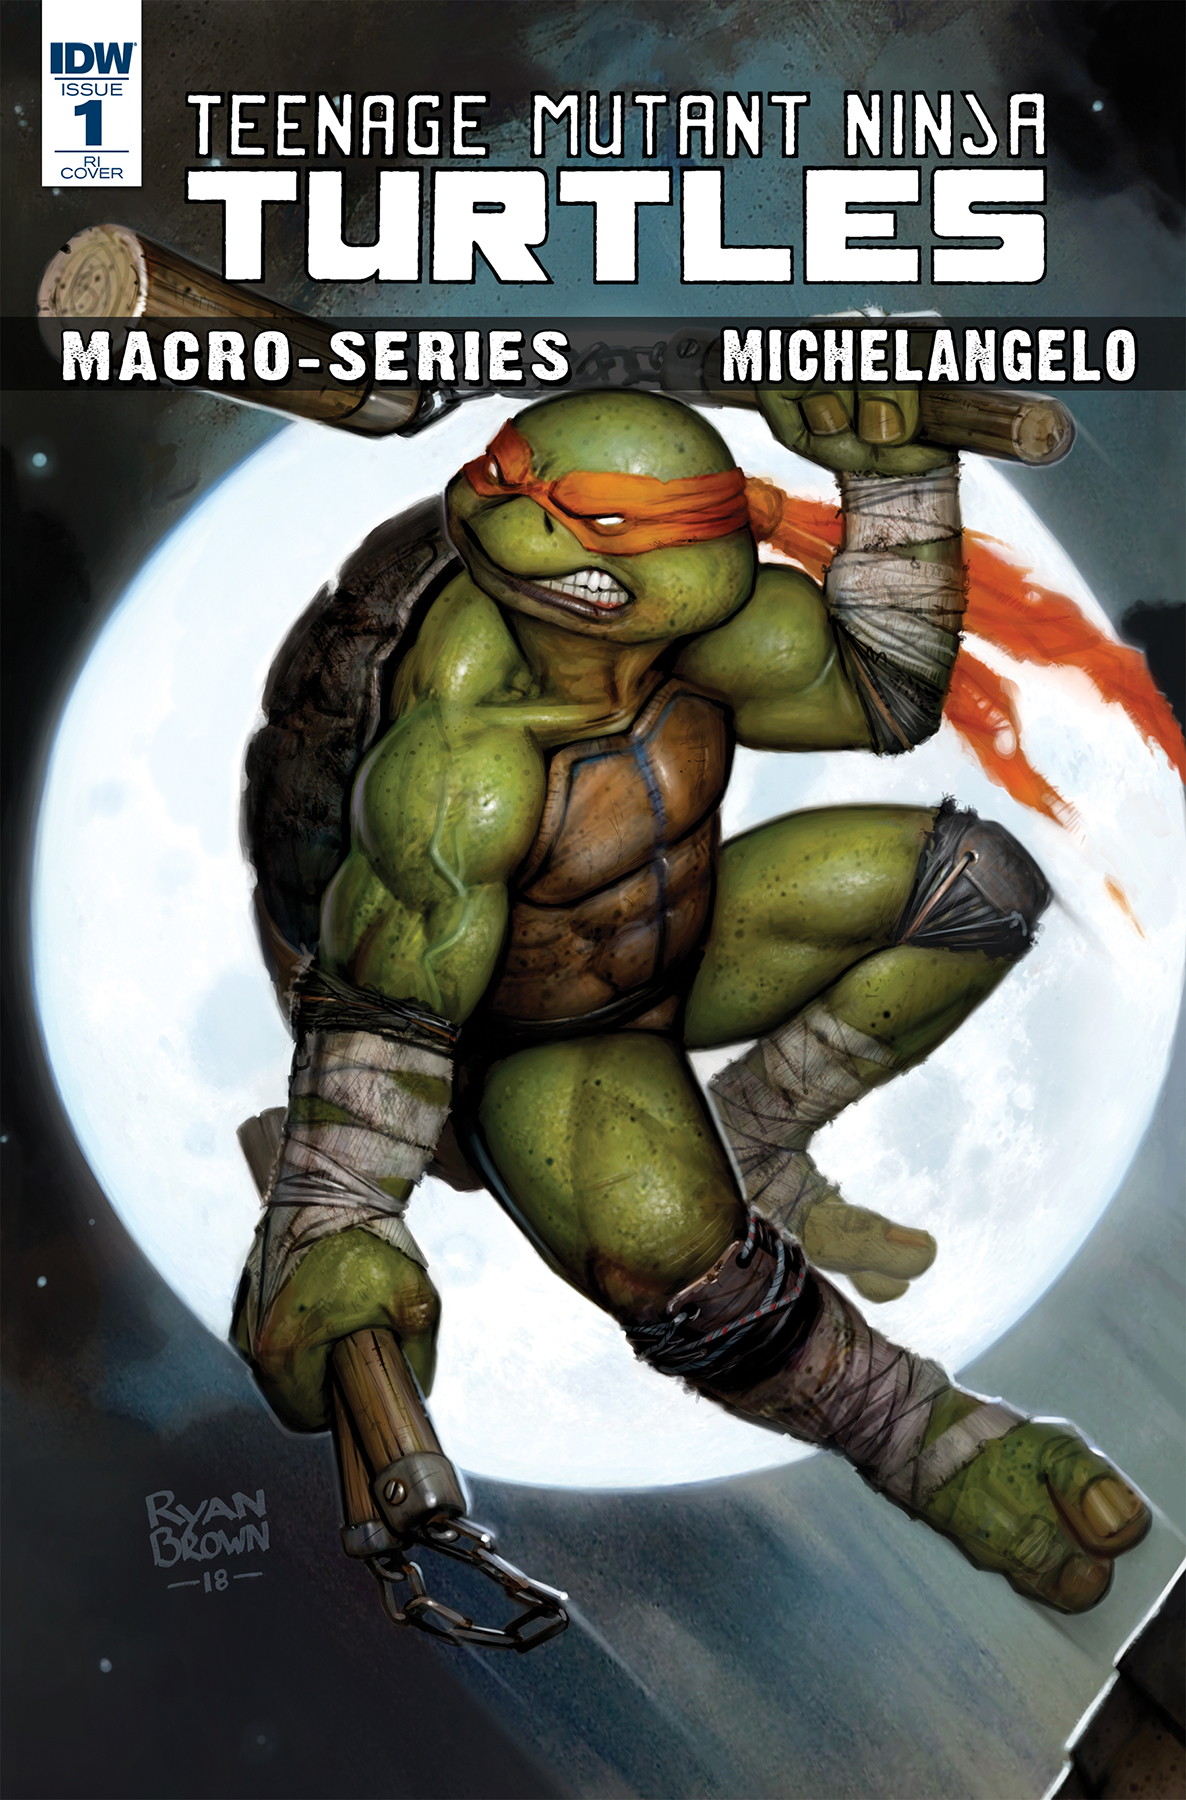 TMNT MACROSERIES MICHELANGELO 10 COPY INCV BROWN